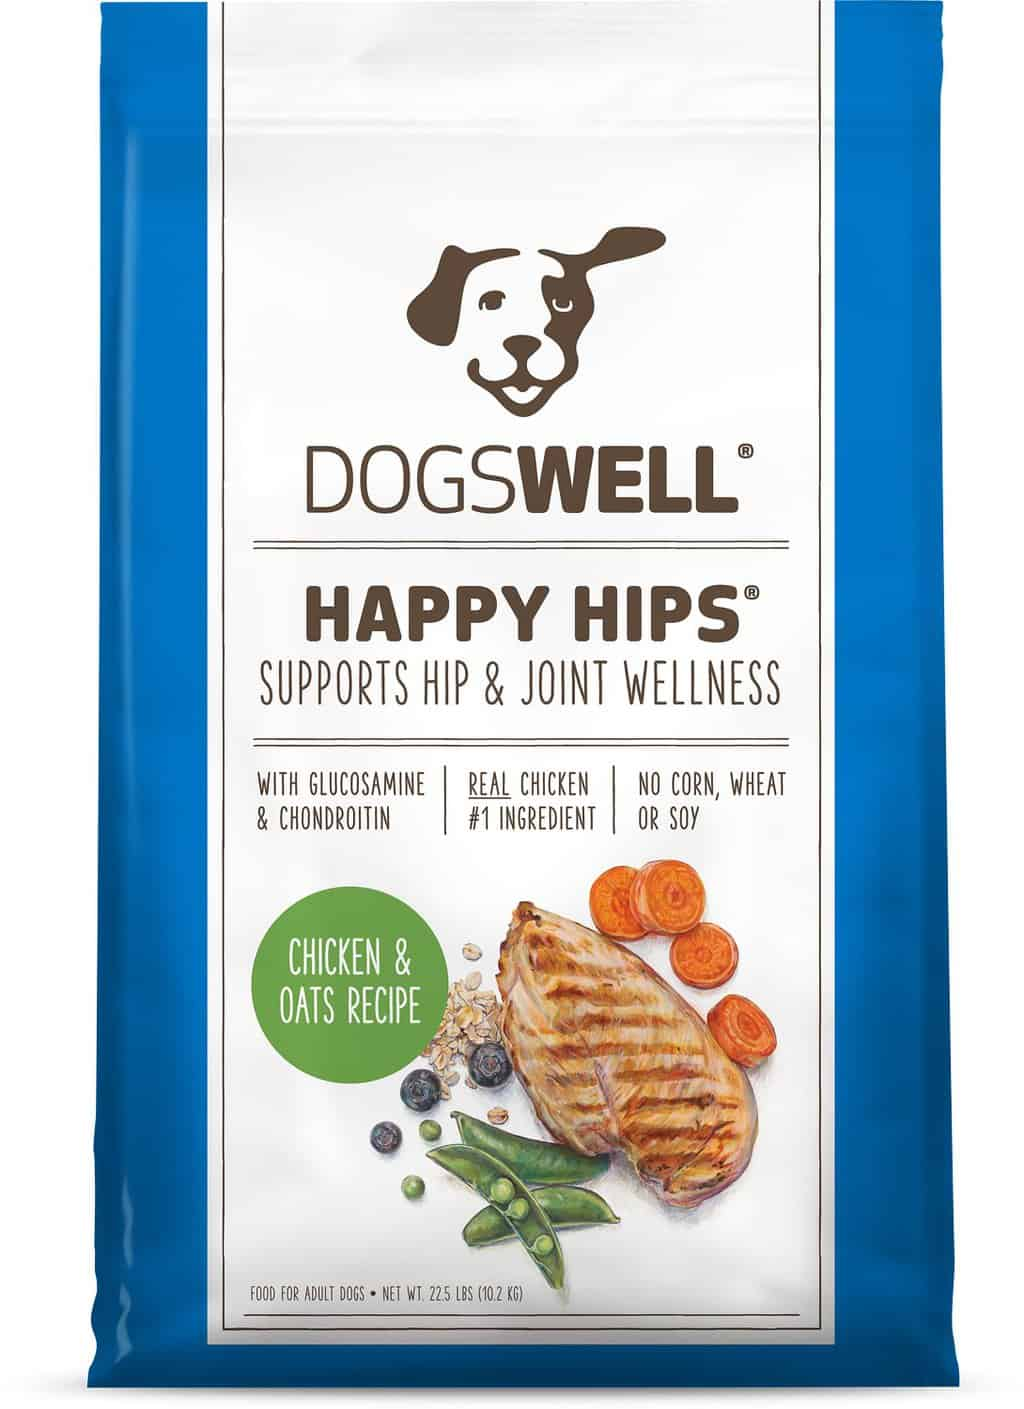 10 Best Dog Foods for Hip & Joint Health 22